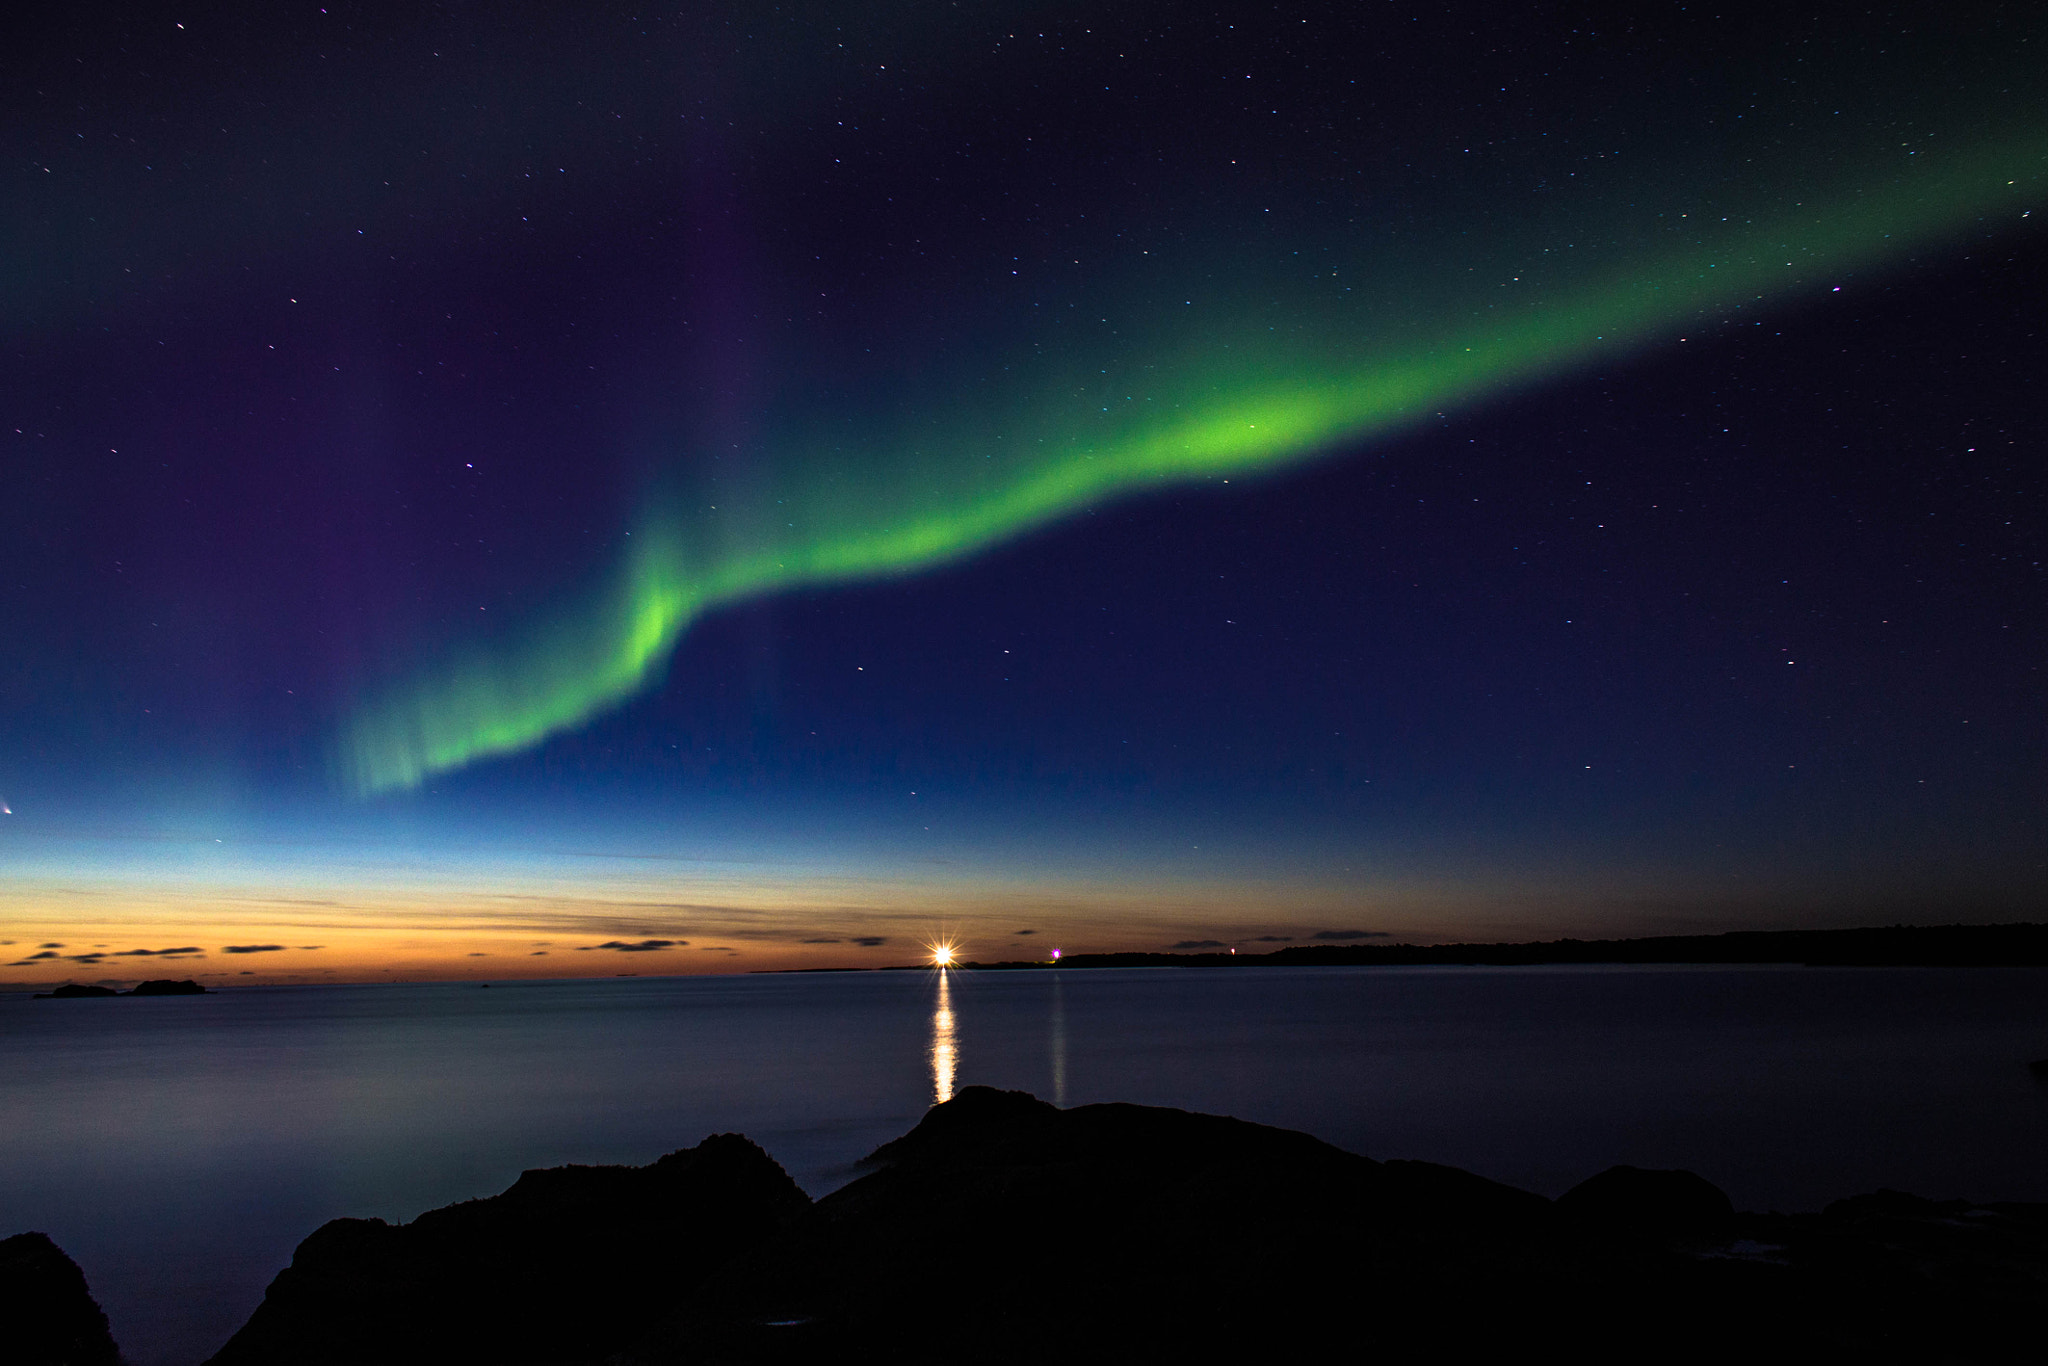 Photograph Northern lights by Kristófer Máni Axelsson on 500px